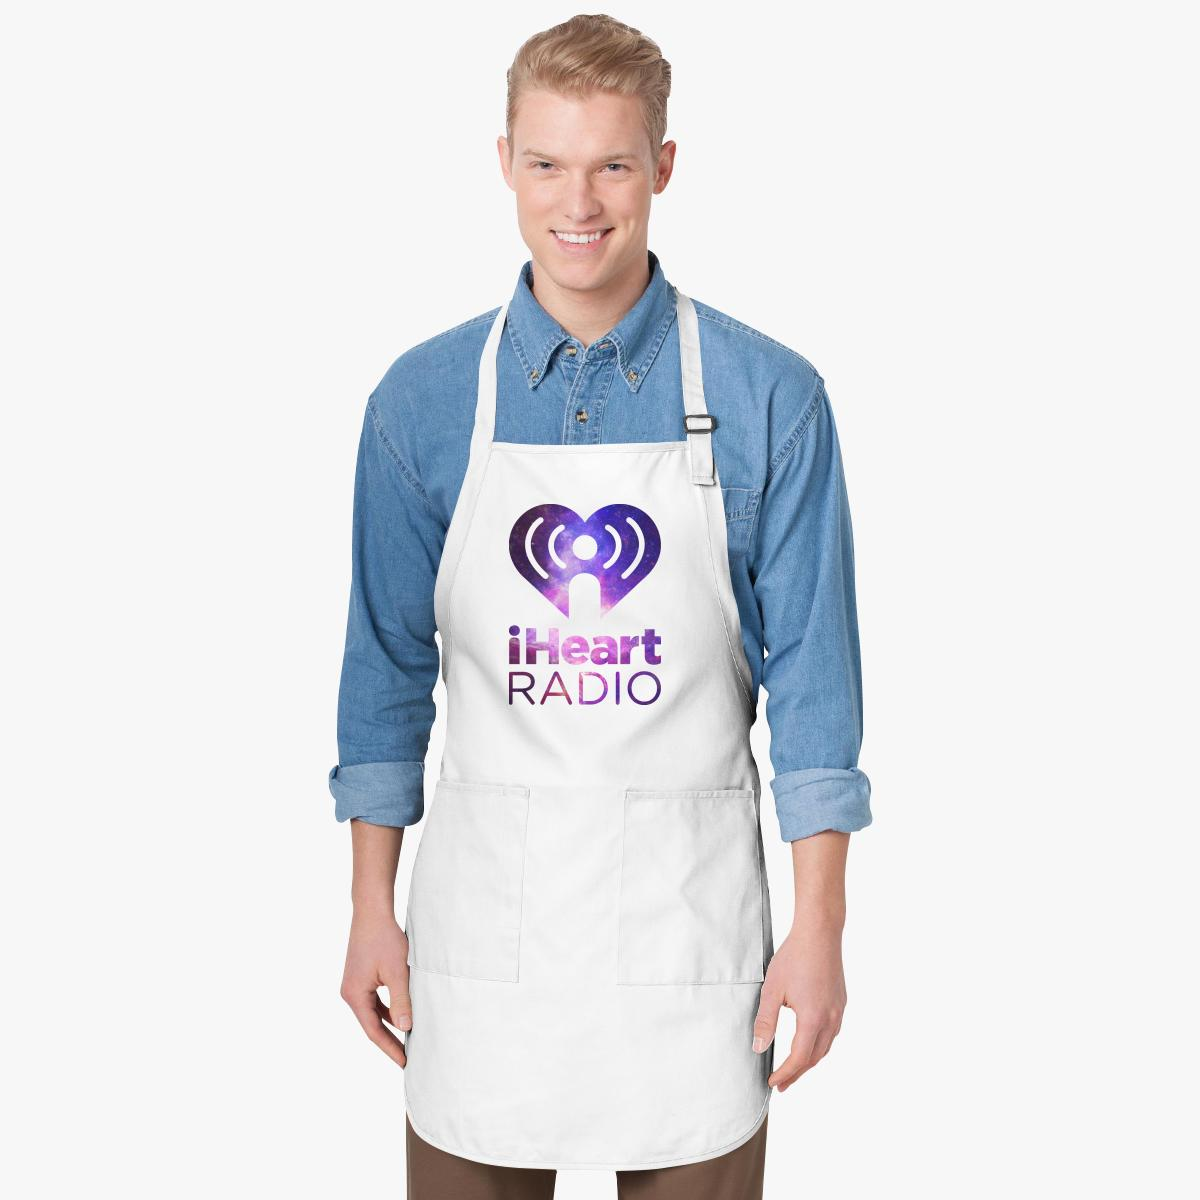 I Heart Radio (IHeartRadio) Galaxy Apron | Customon.com